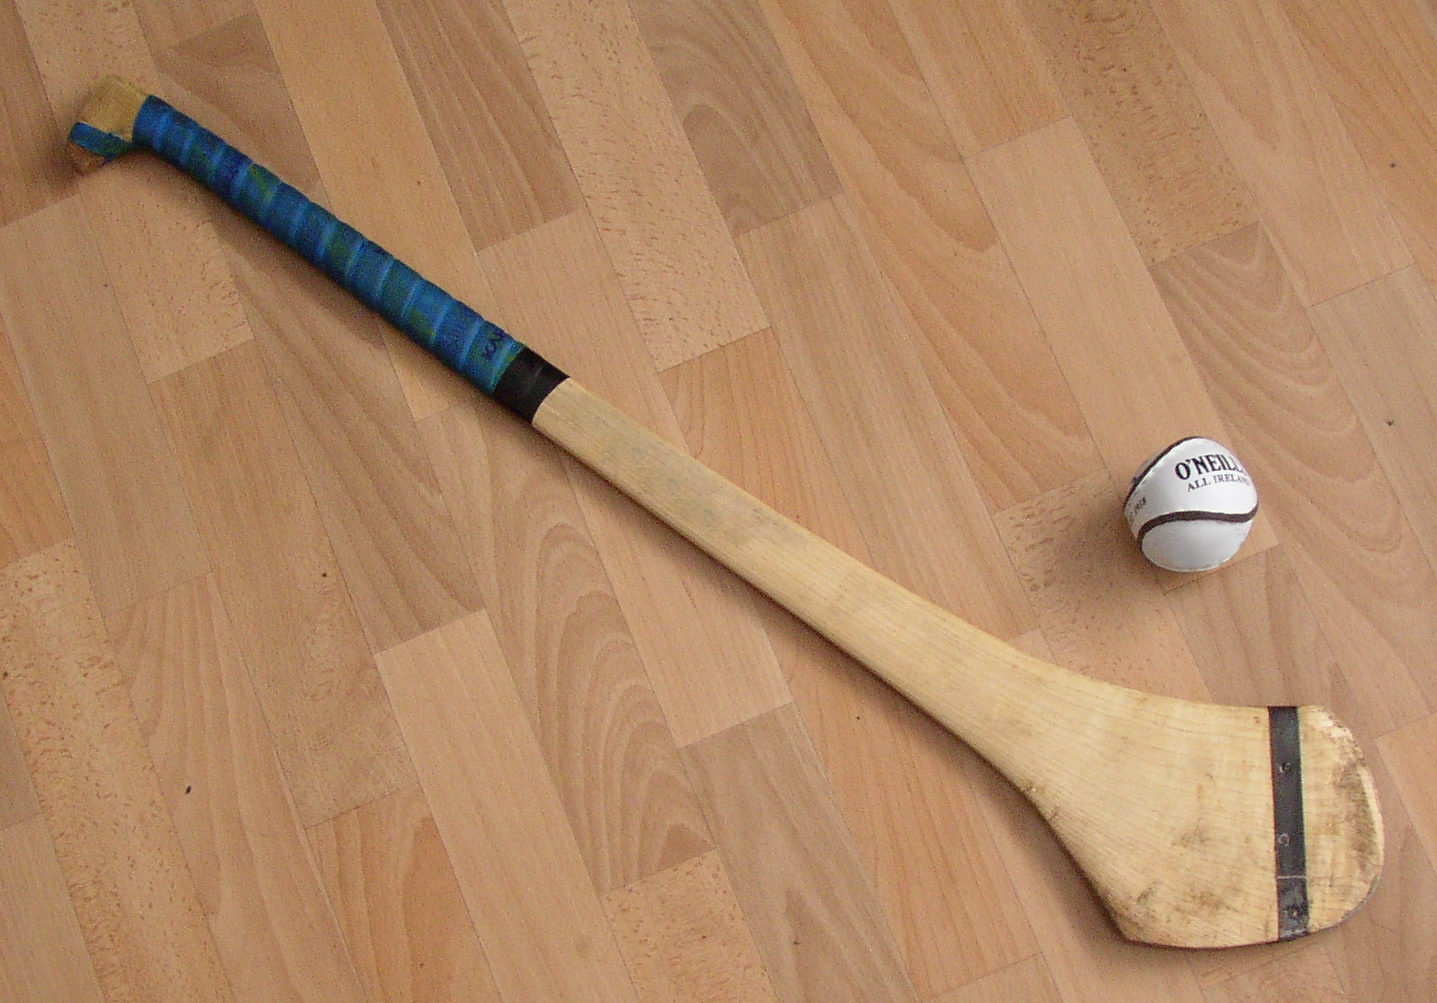 A hurley and hurling ball in Dublin, Ireland